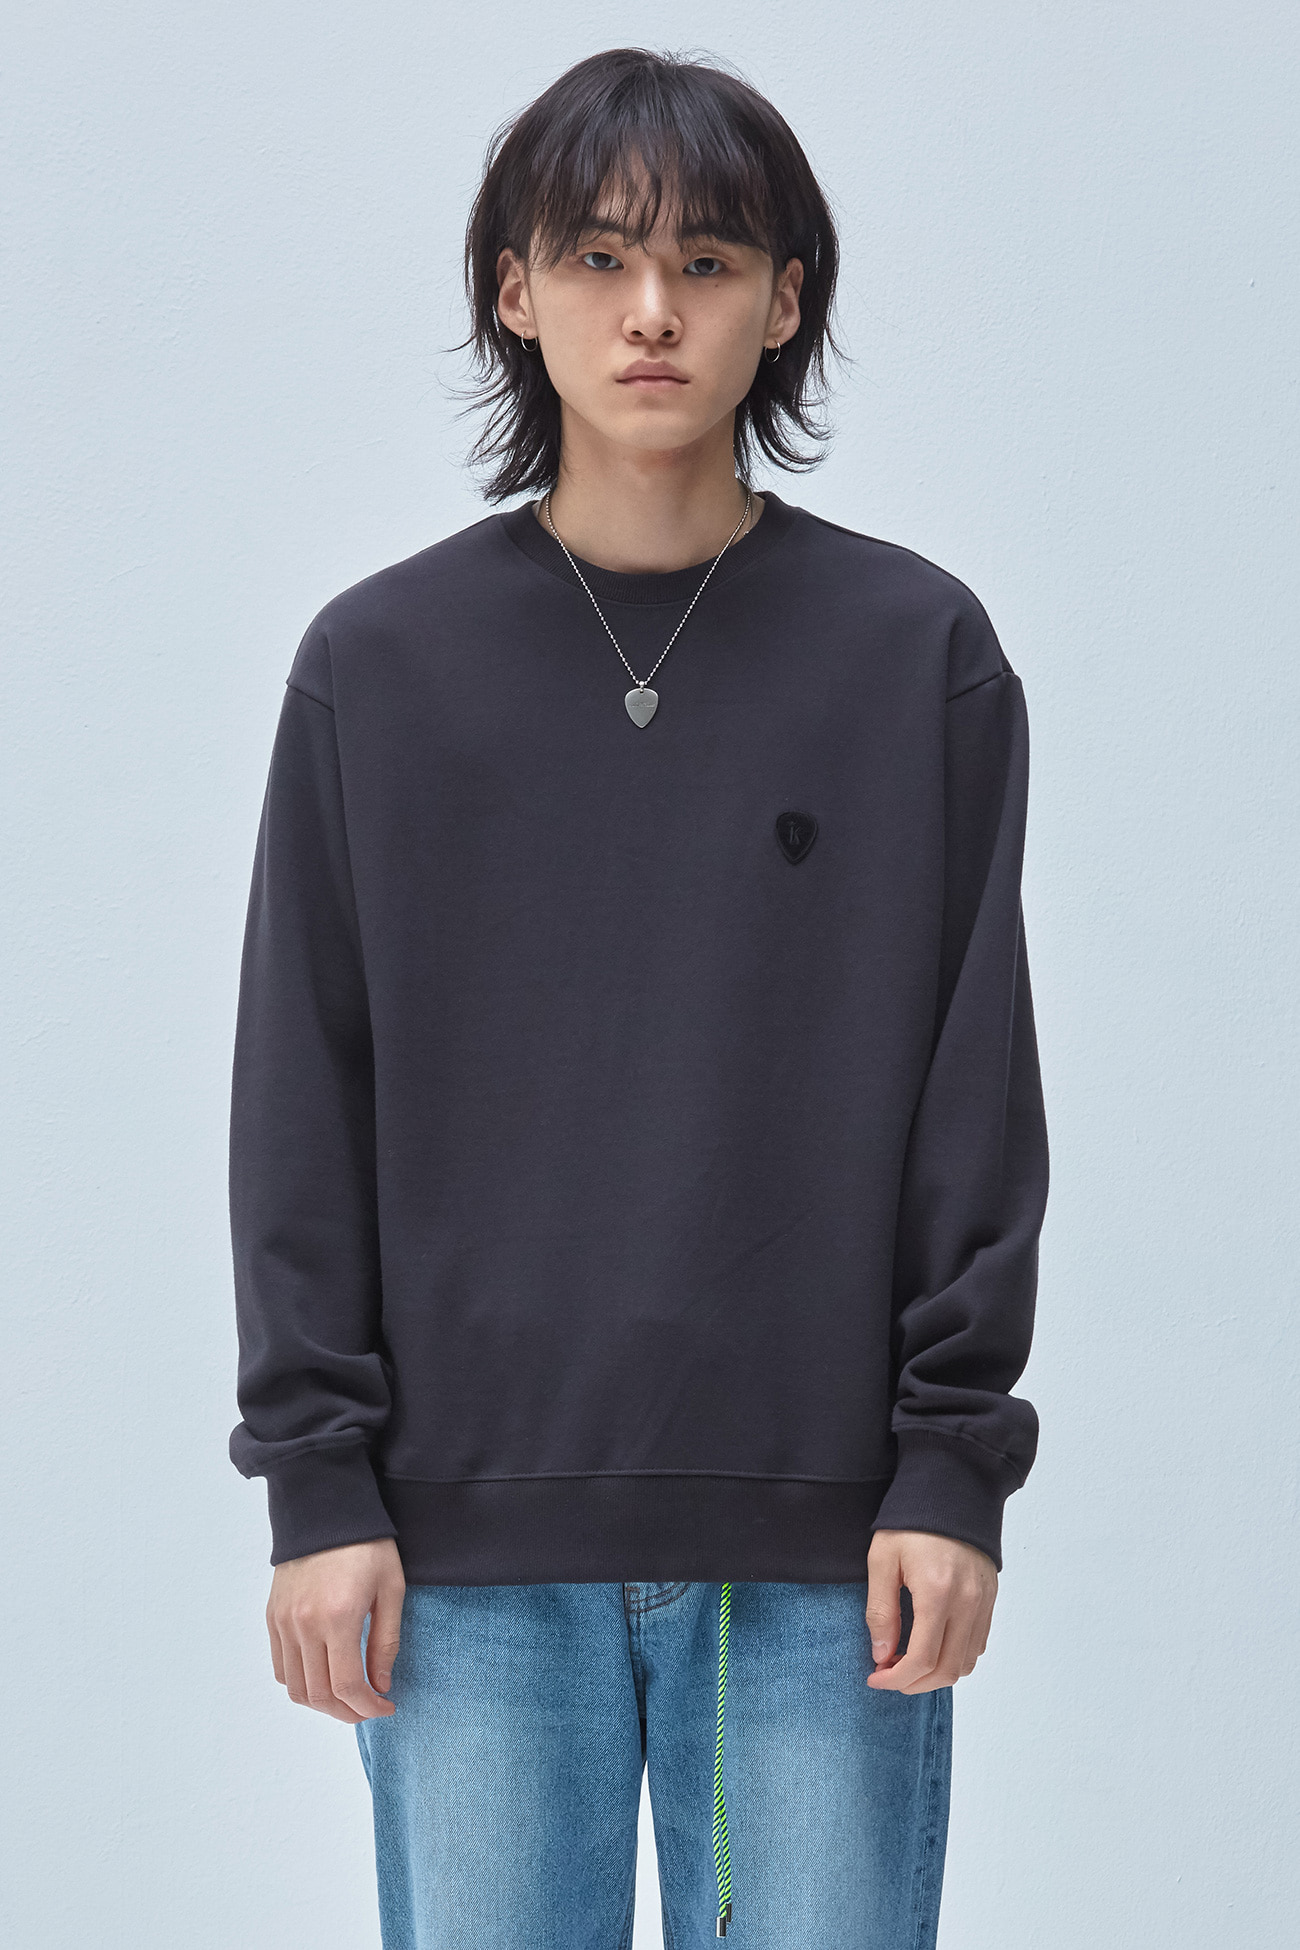 PICK WAPPEN SWEATSHIRT[DARK GERY]